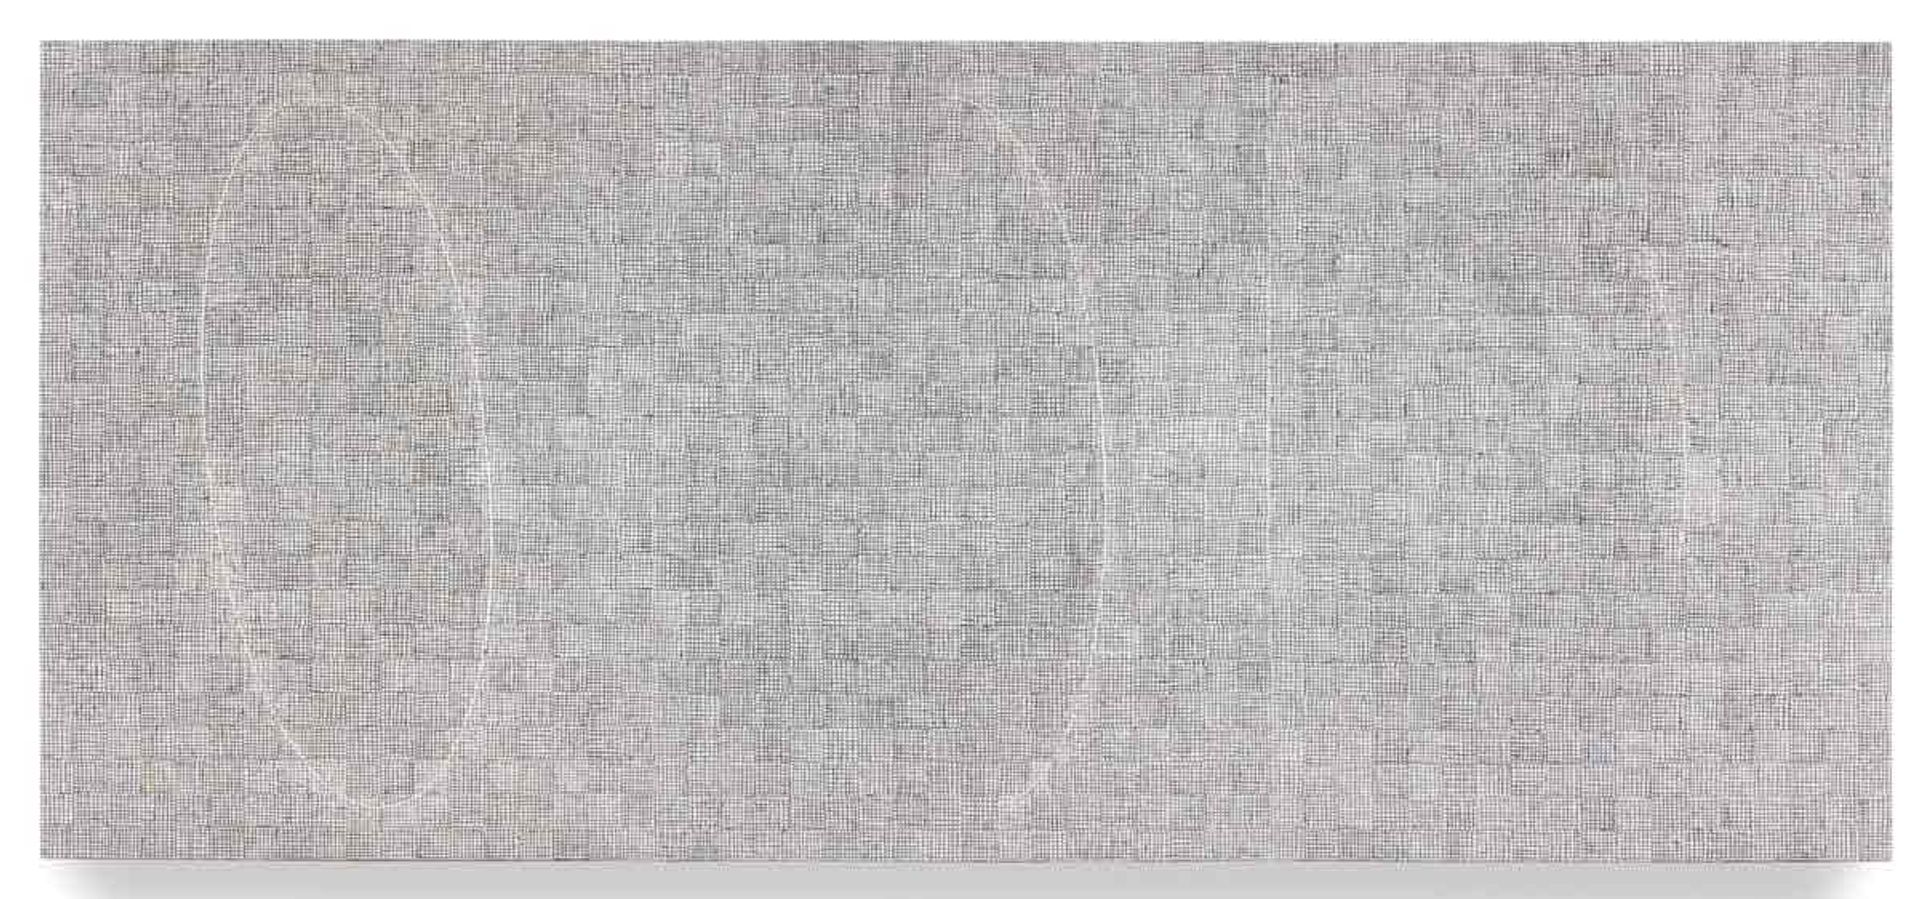 McArthur Binion's monumental painting DNA: Transition (2018)